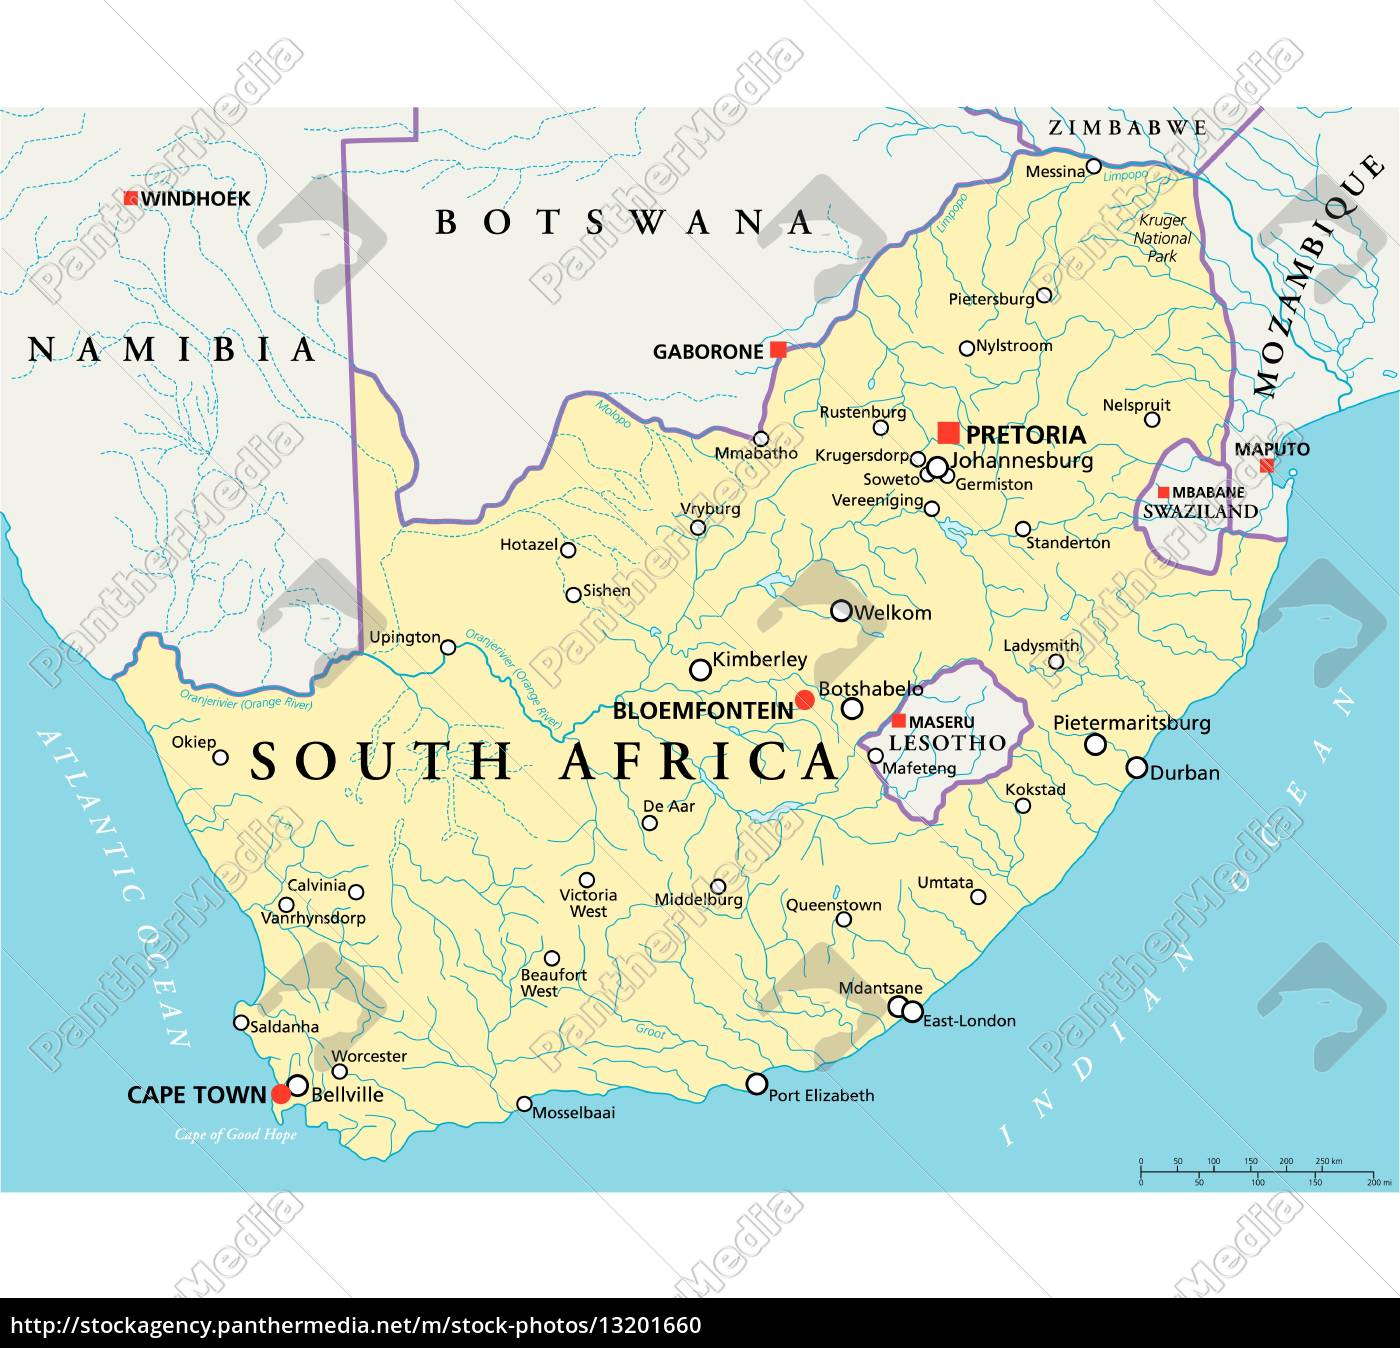 Political Map Of South Africa South Africa Political Map   Royalty free photo   #13201660